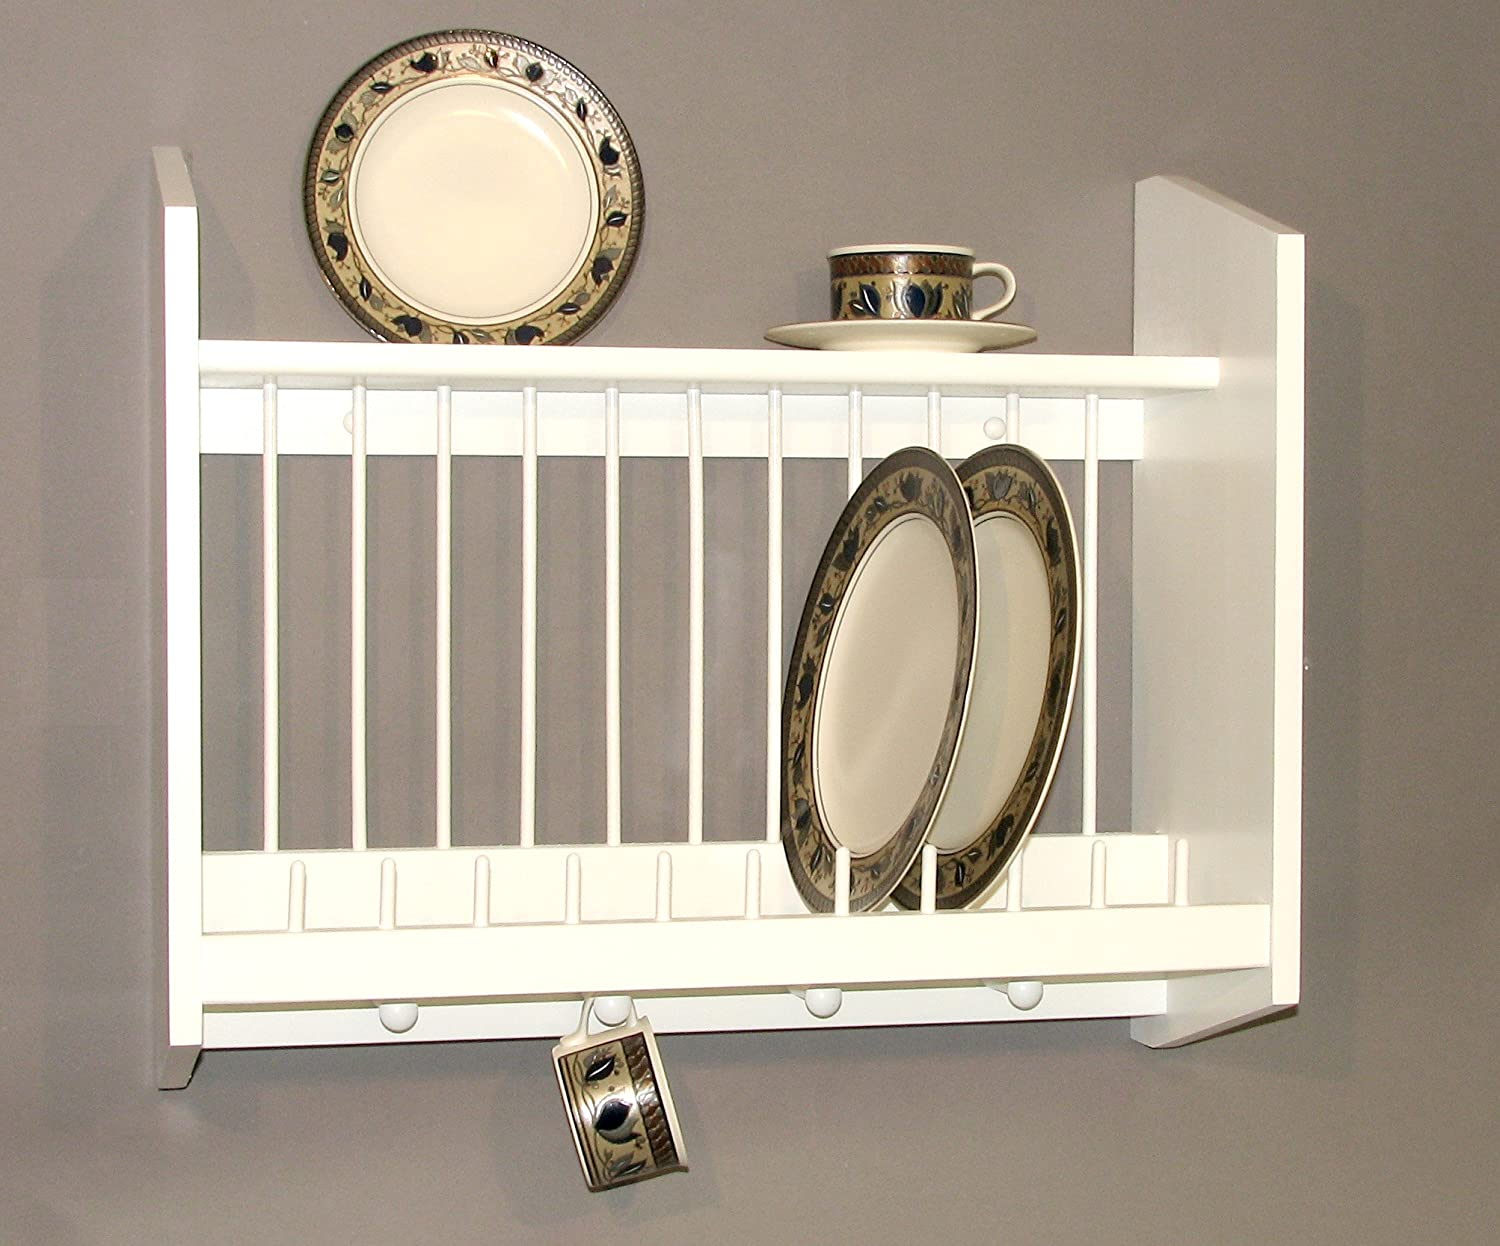 Amazon.com Plate Rack with Shelf White MADE IN USA Dish Racks Kitchen u0026 Dining & Amazon.com: Plate Rack with Shelf White MADE IN USA: Dish Racks ...